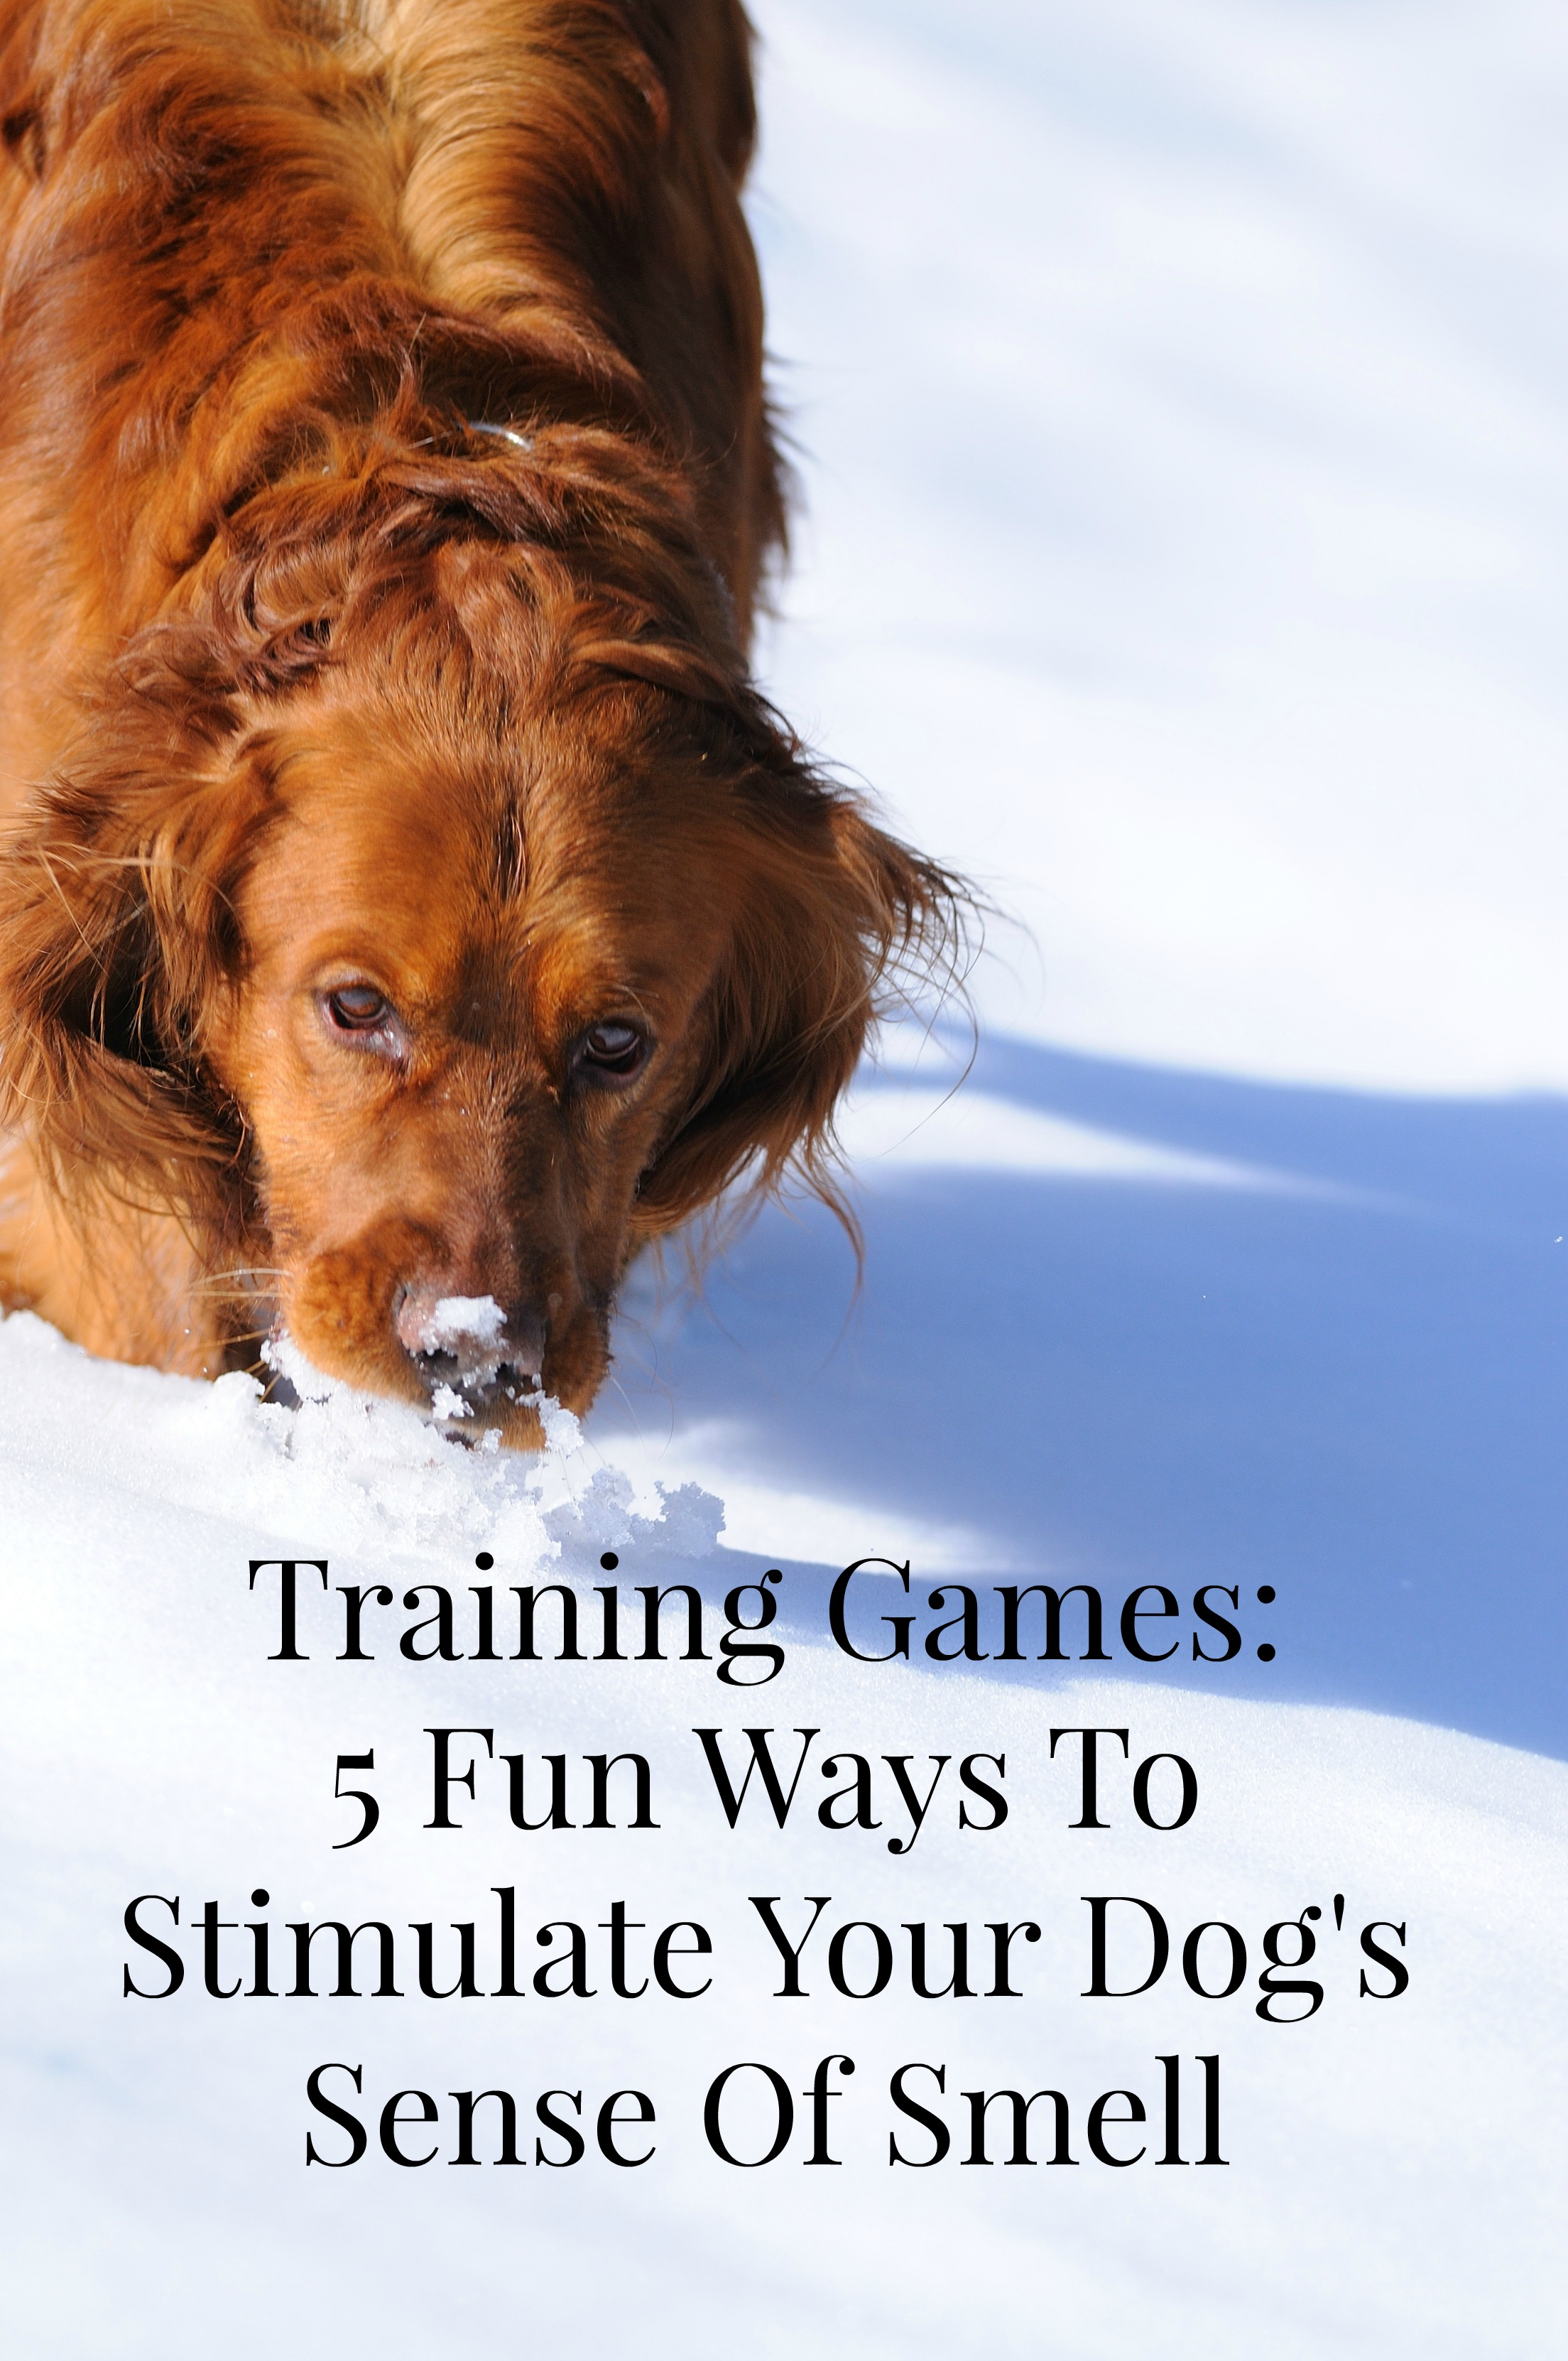 Training Games: 5 Fun Ways To Stimulate Your Dog's Sense Of Smell